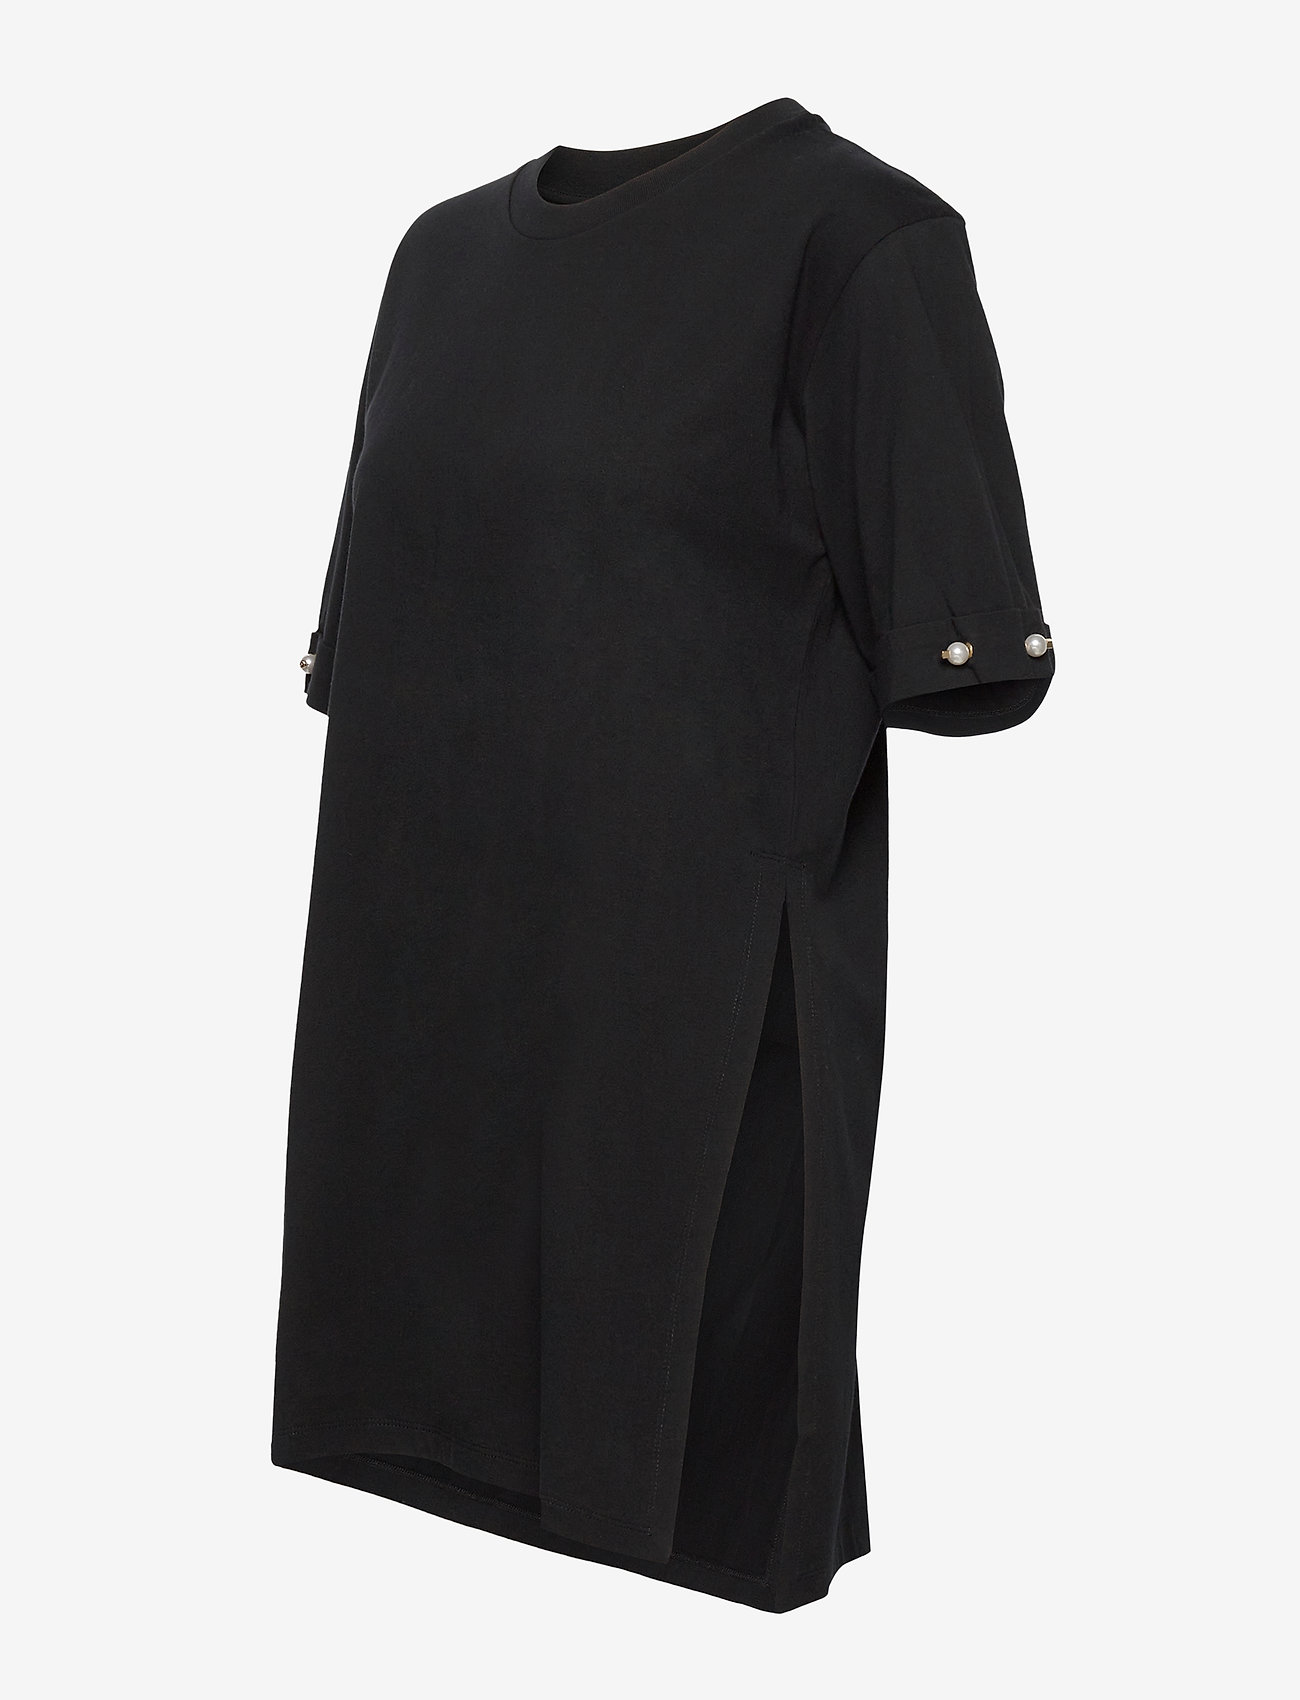 Mother of Pearl - MINTIE OVERSIZED T-SHIRT WITH PEARL BAR - t-shirts - black - 2